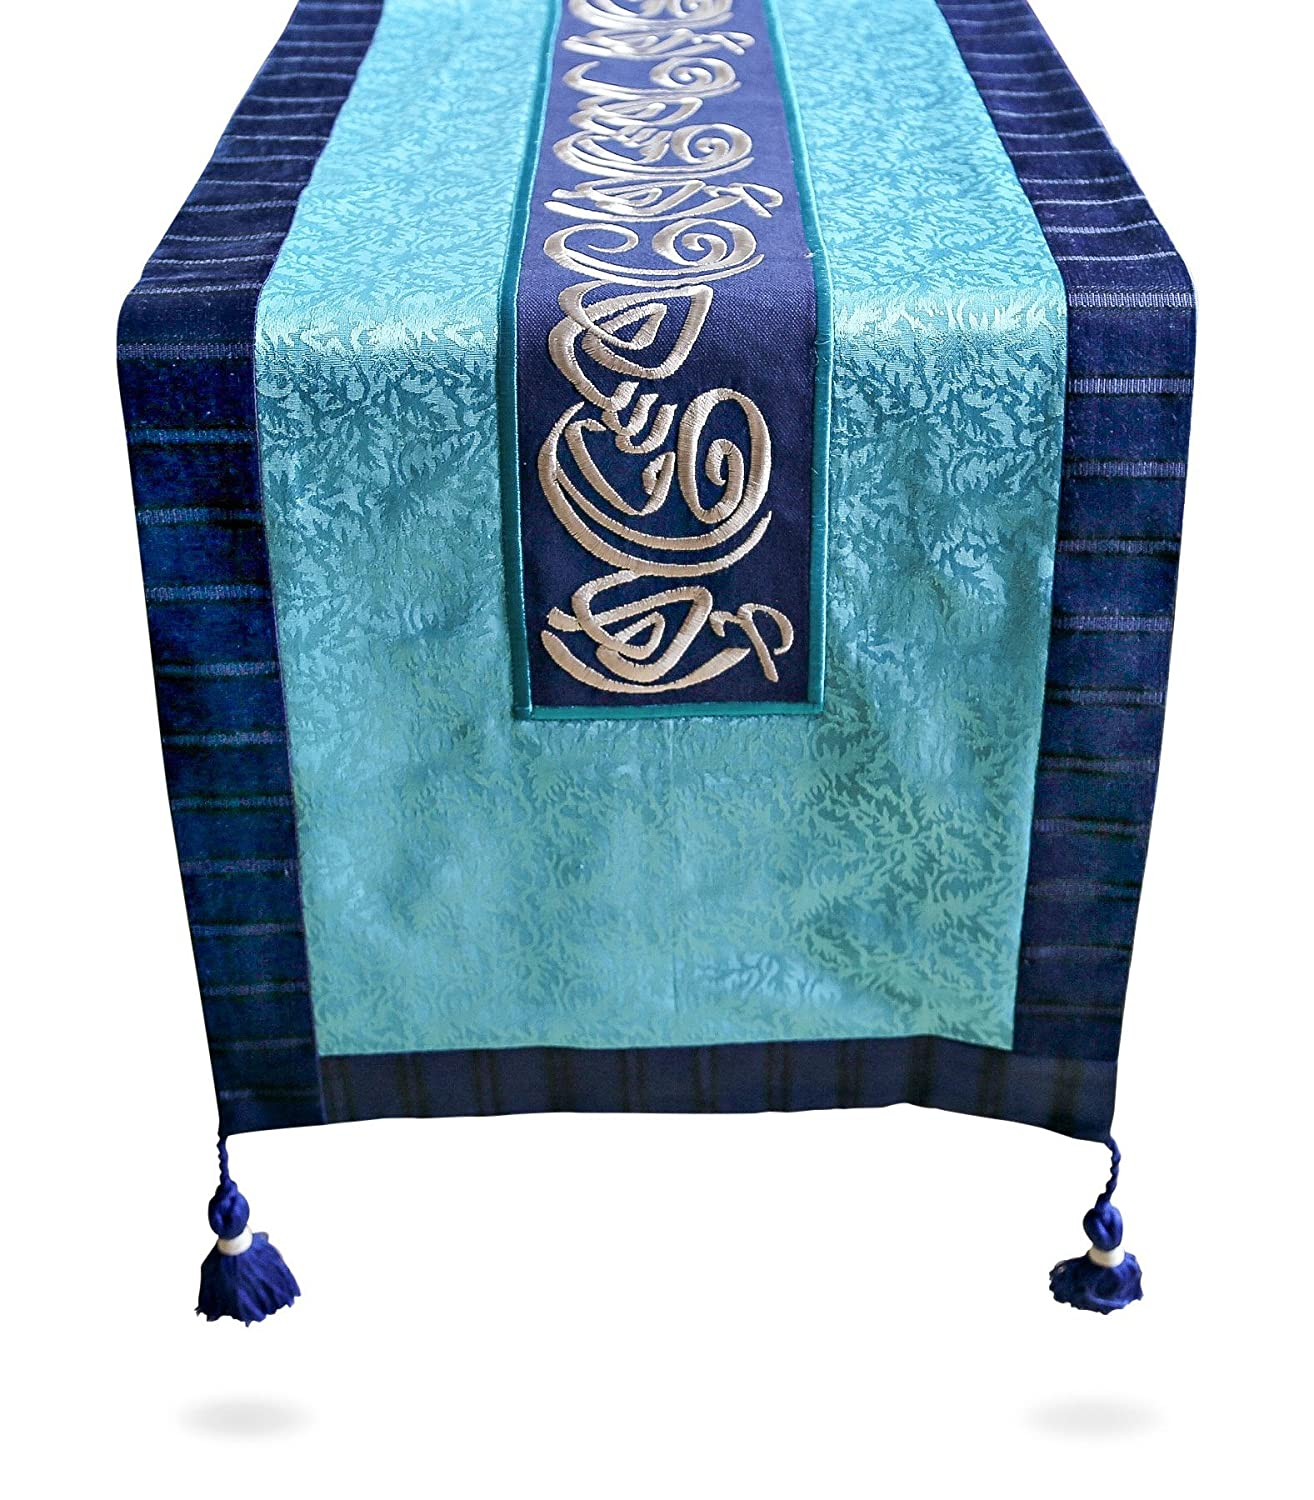 Amazon.com: Long Table Runner Embroidered with Arabic Calligraphy ...